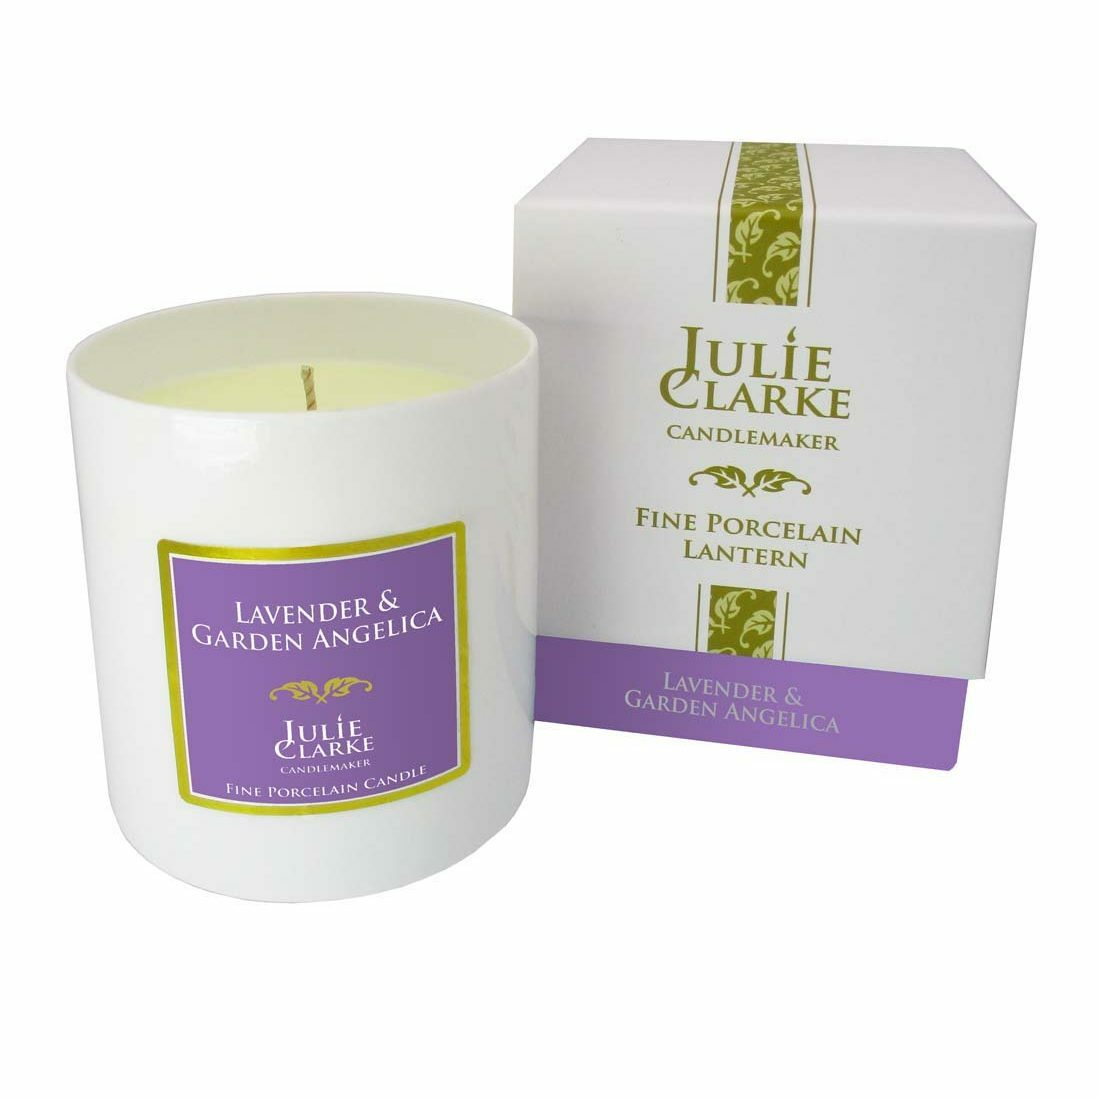 Lavender & Garden Angelica  White Porcelain Candle